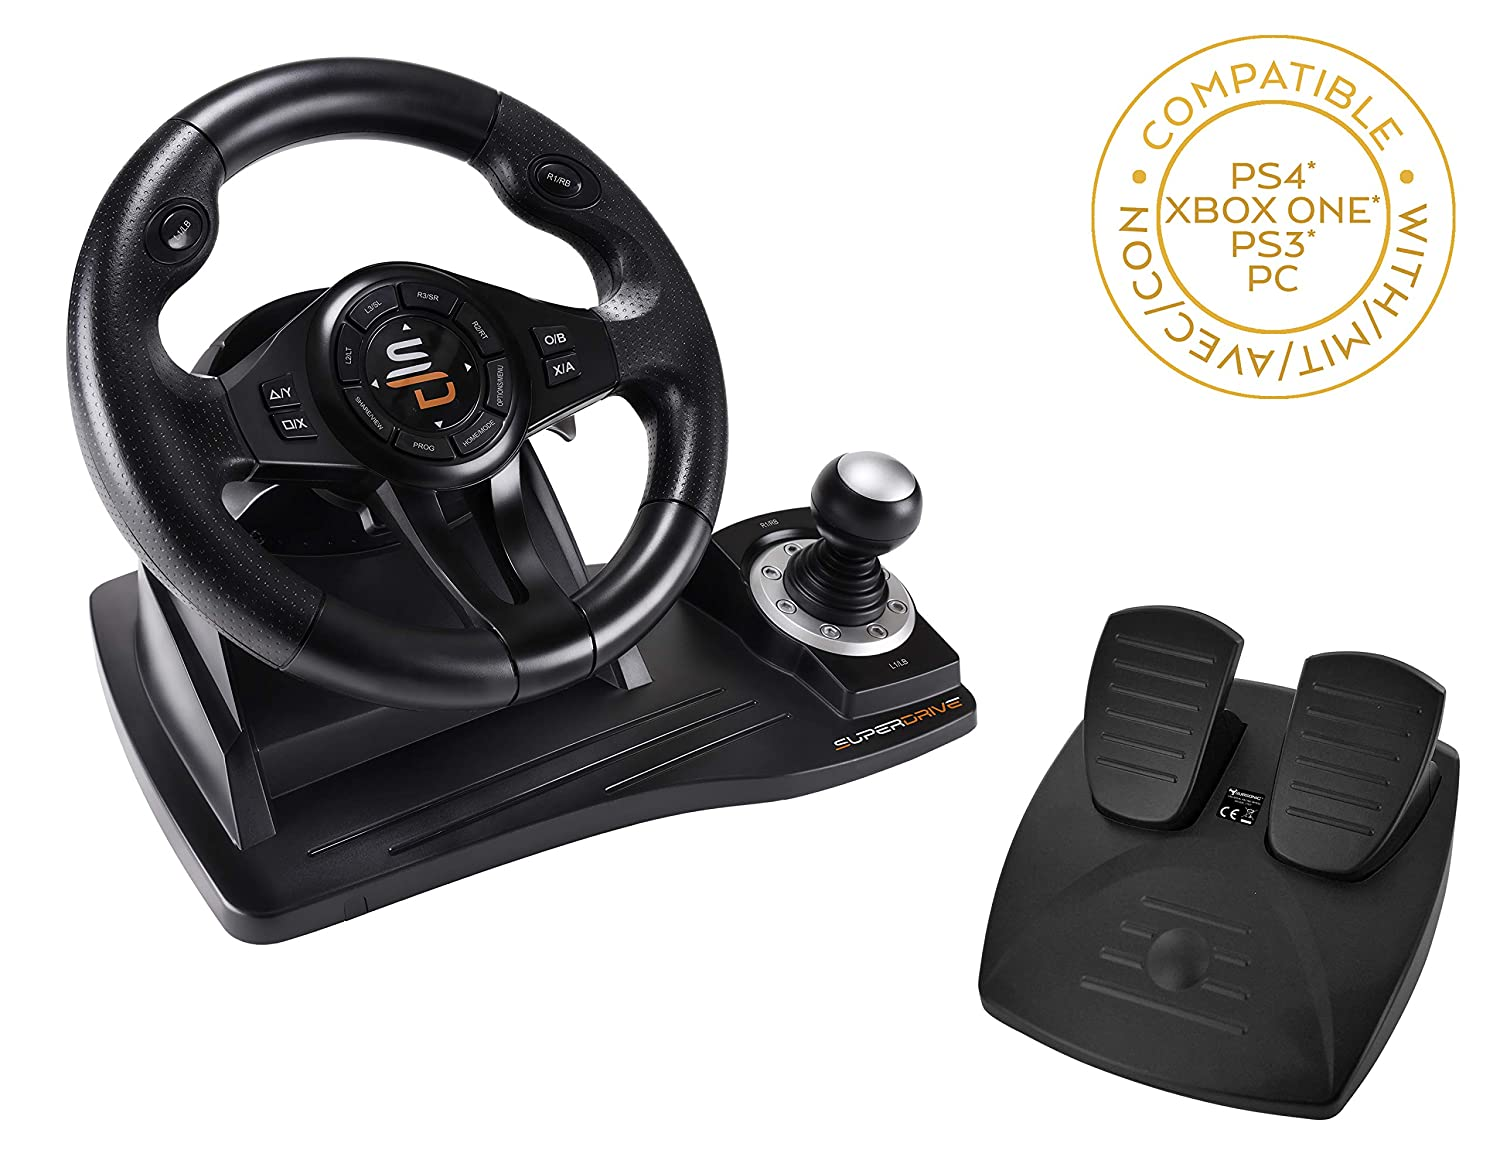 Superdrive Racing Steering Wheel Gs500 With Gear Lever Pedal And Vibrations For Ps4 Xbox One Pc Ps3 Video Games